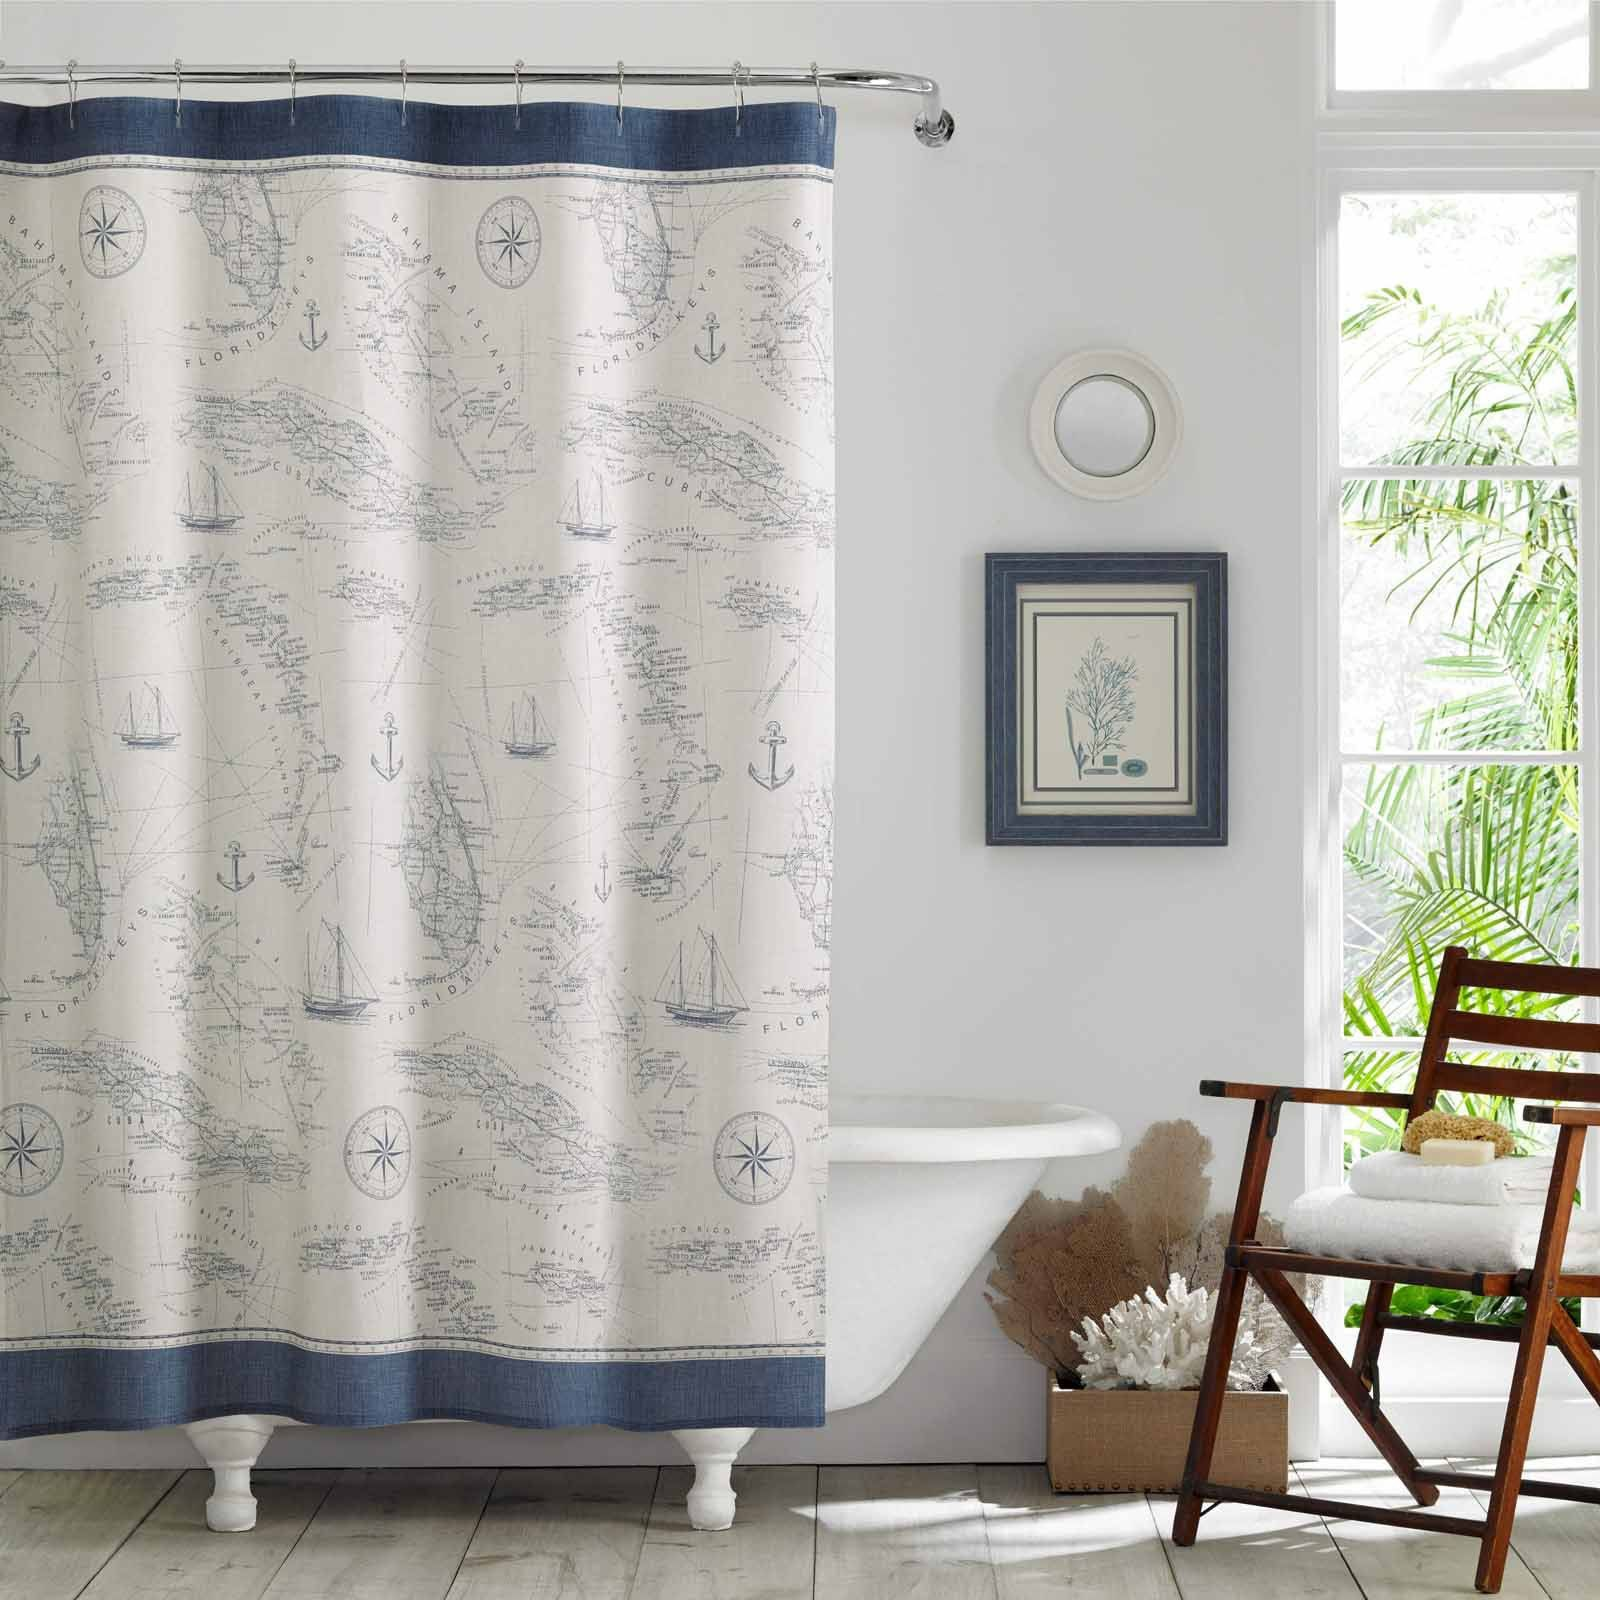 Caribbean Sea Cotton Shower Curtain By Tommy Bahama Cotton Shower Curtain Designer Shower Curtains Curtains